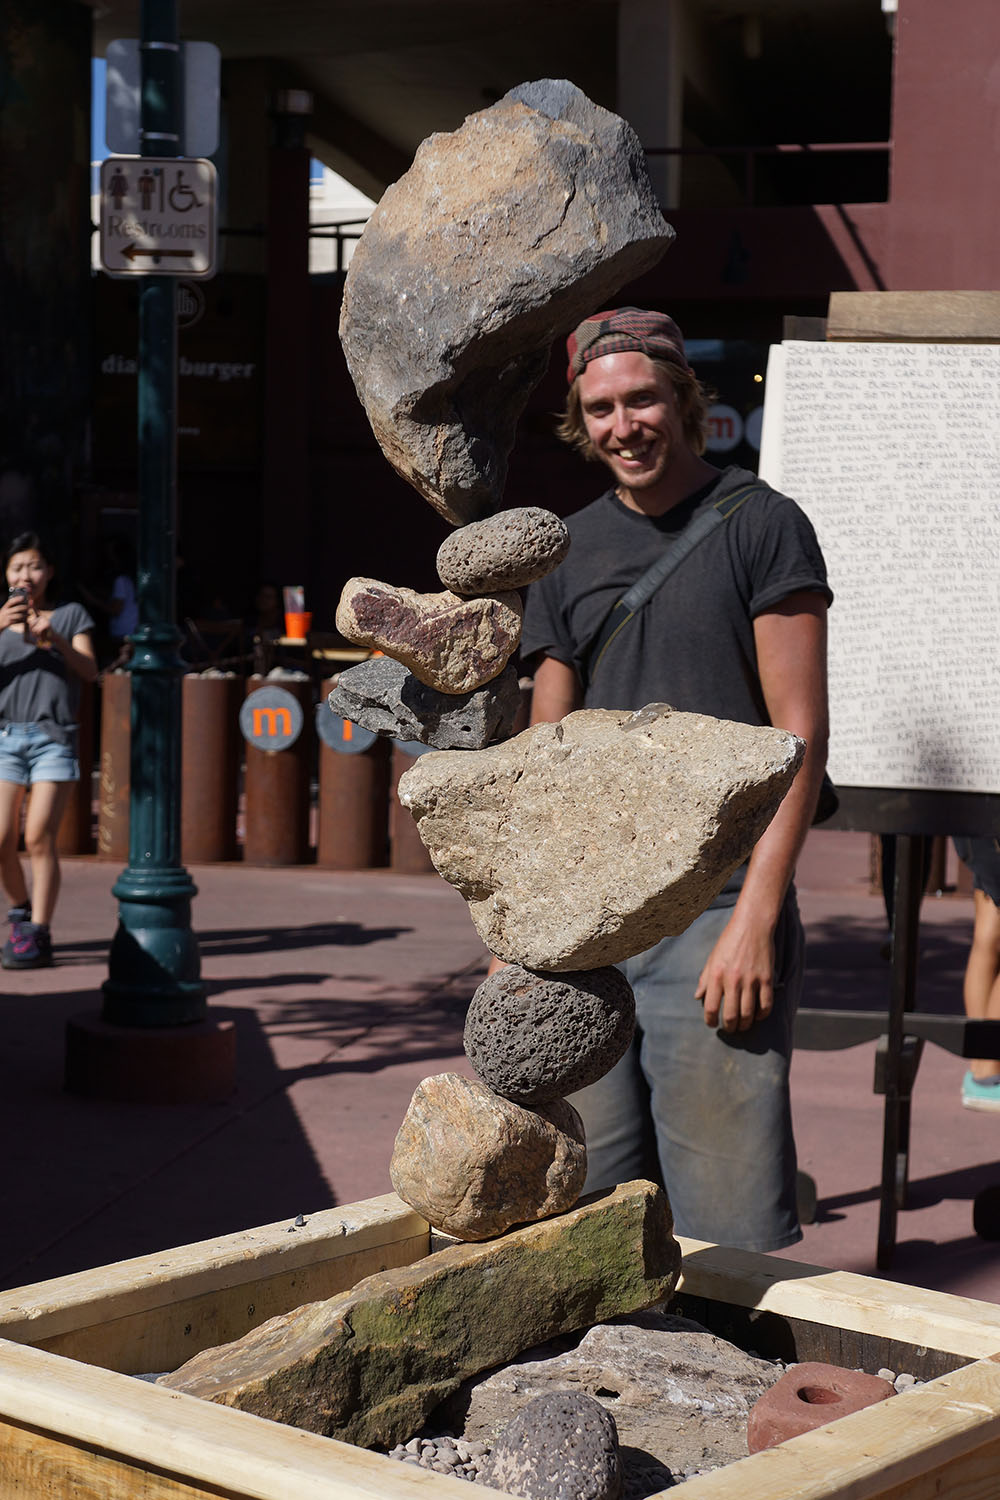 Michale Grab stands behind one of his gravity-only stone sculptures. Flagstaff Square, Sept. 2014.